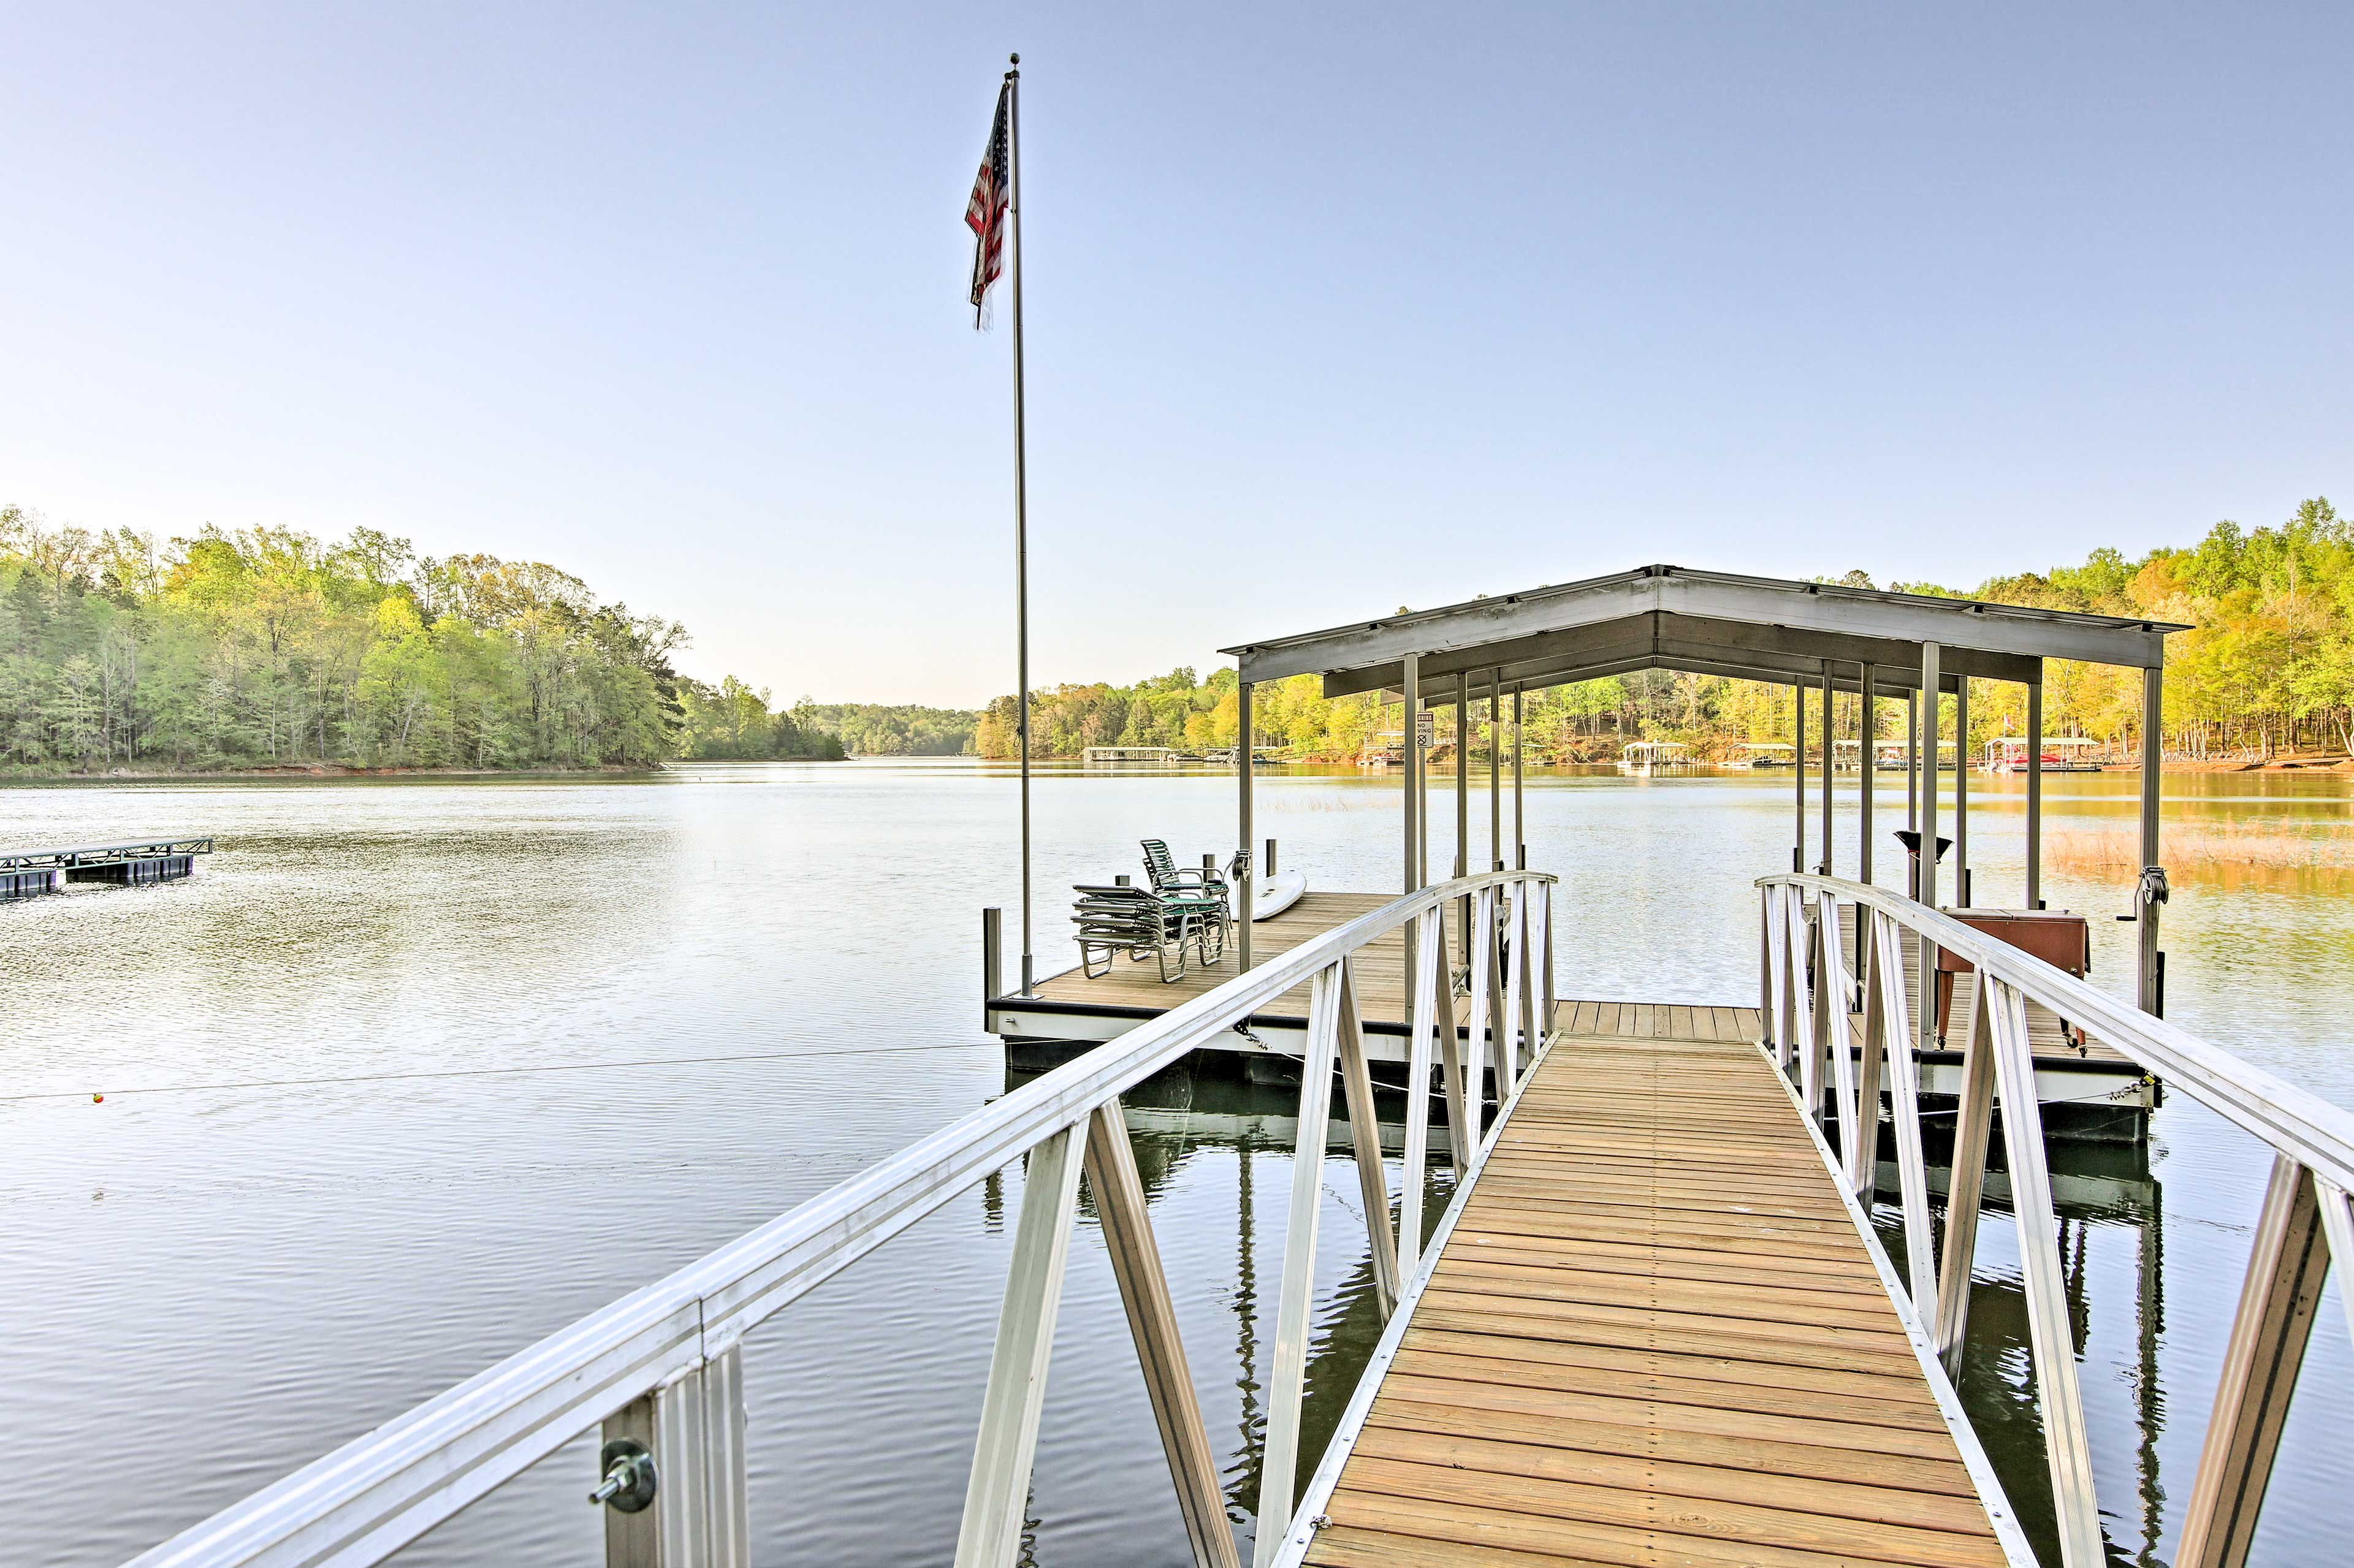 Make your next Lake Hartwell trip an unforgettable one!